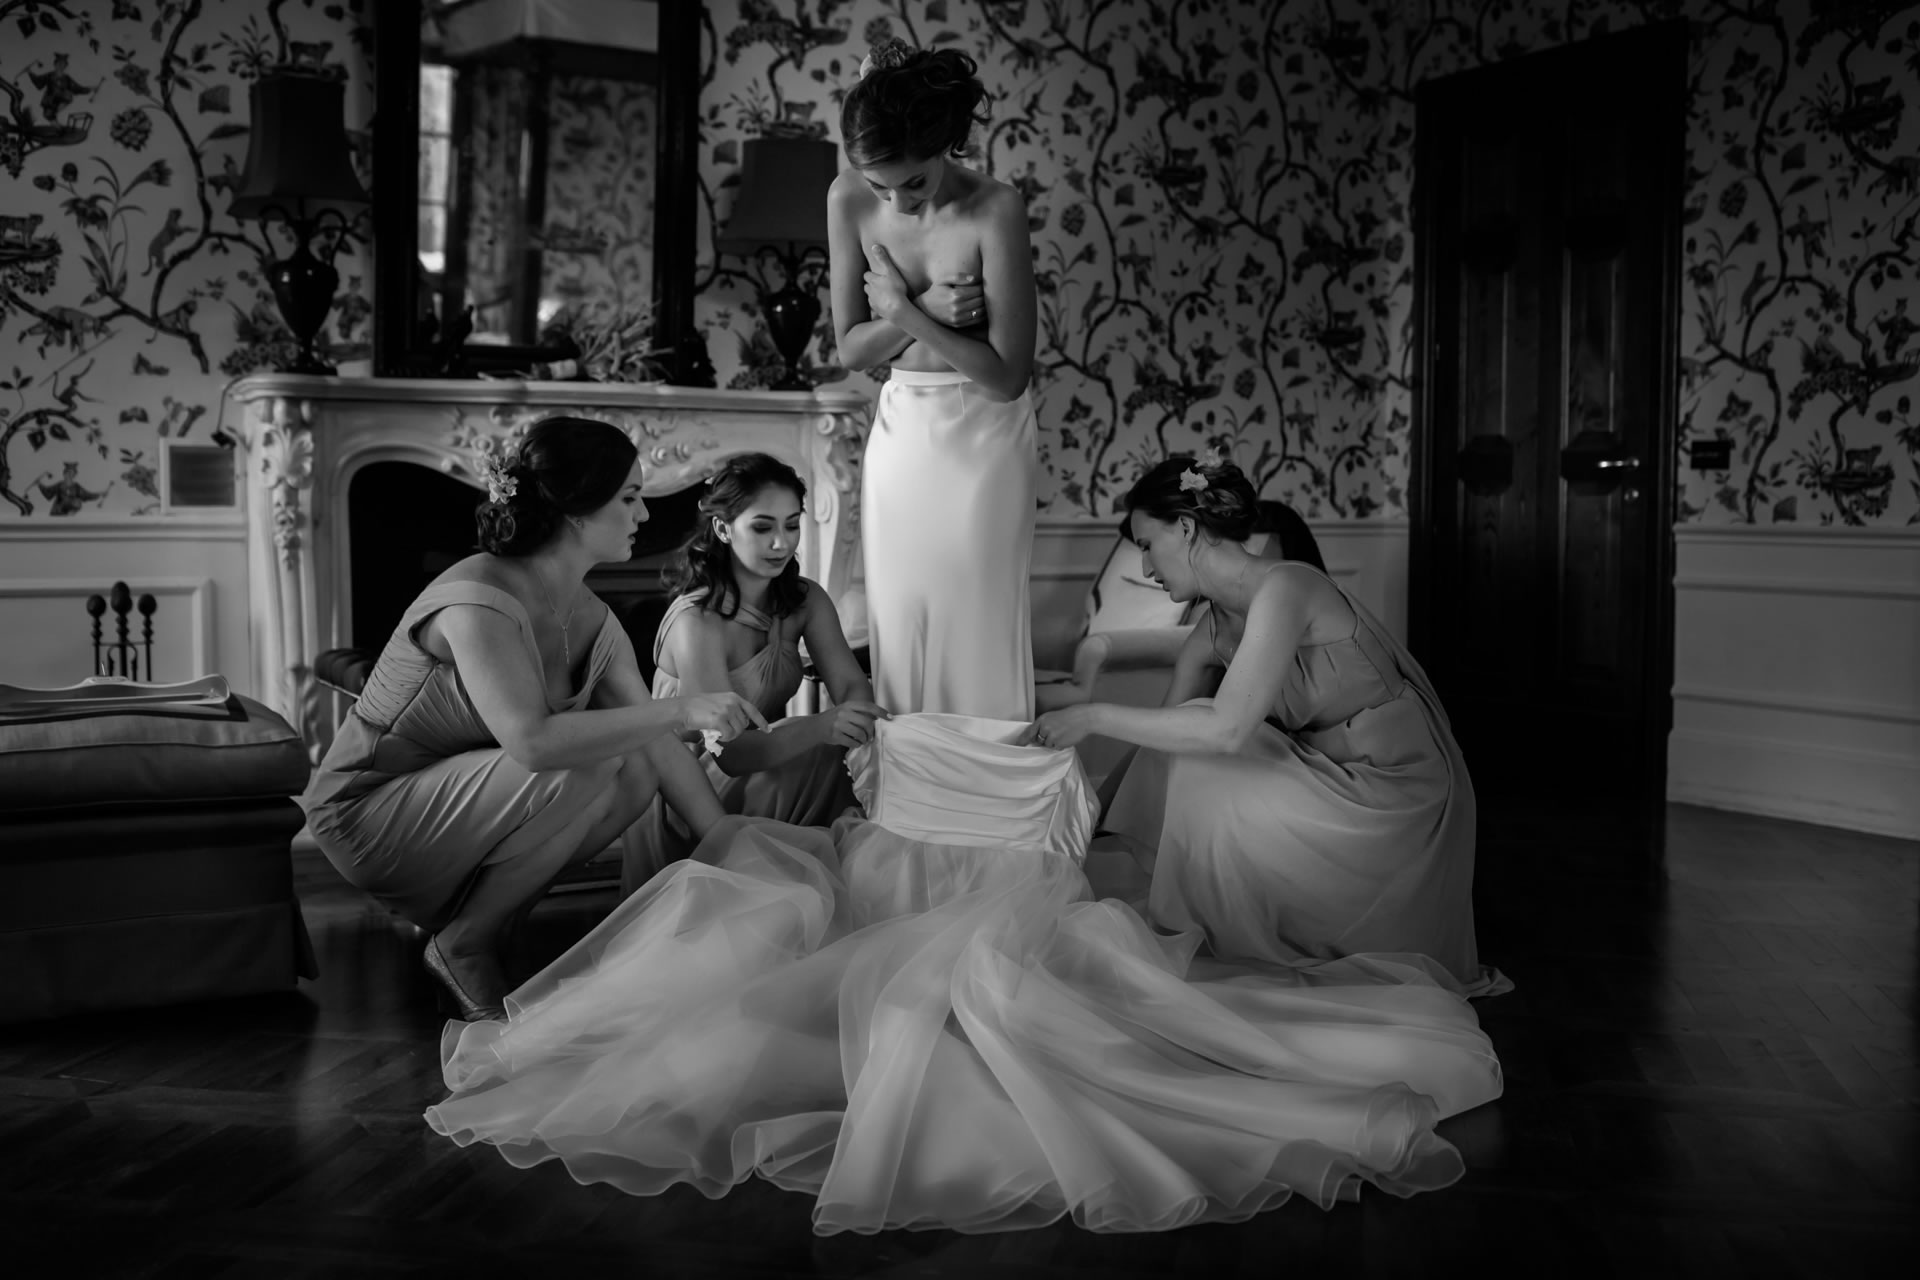 Change Of Clothes - 9 :: Amazing wedding day at Il Borro :: Luxury wedding photography - 8 :: Change Of Clothes - 9